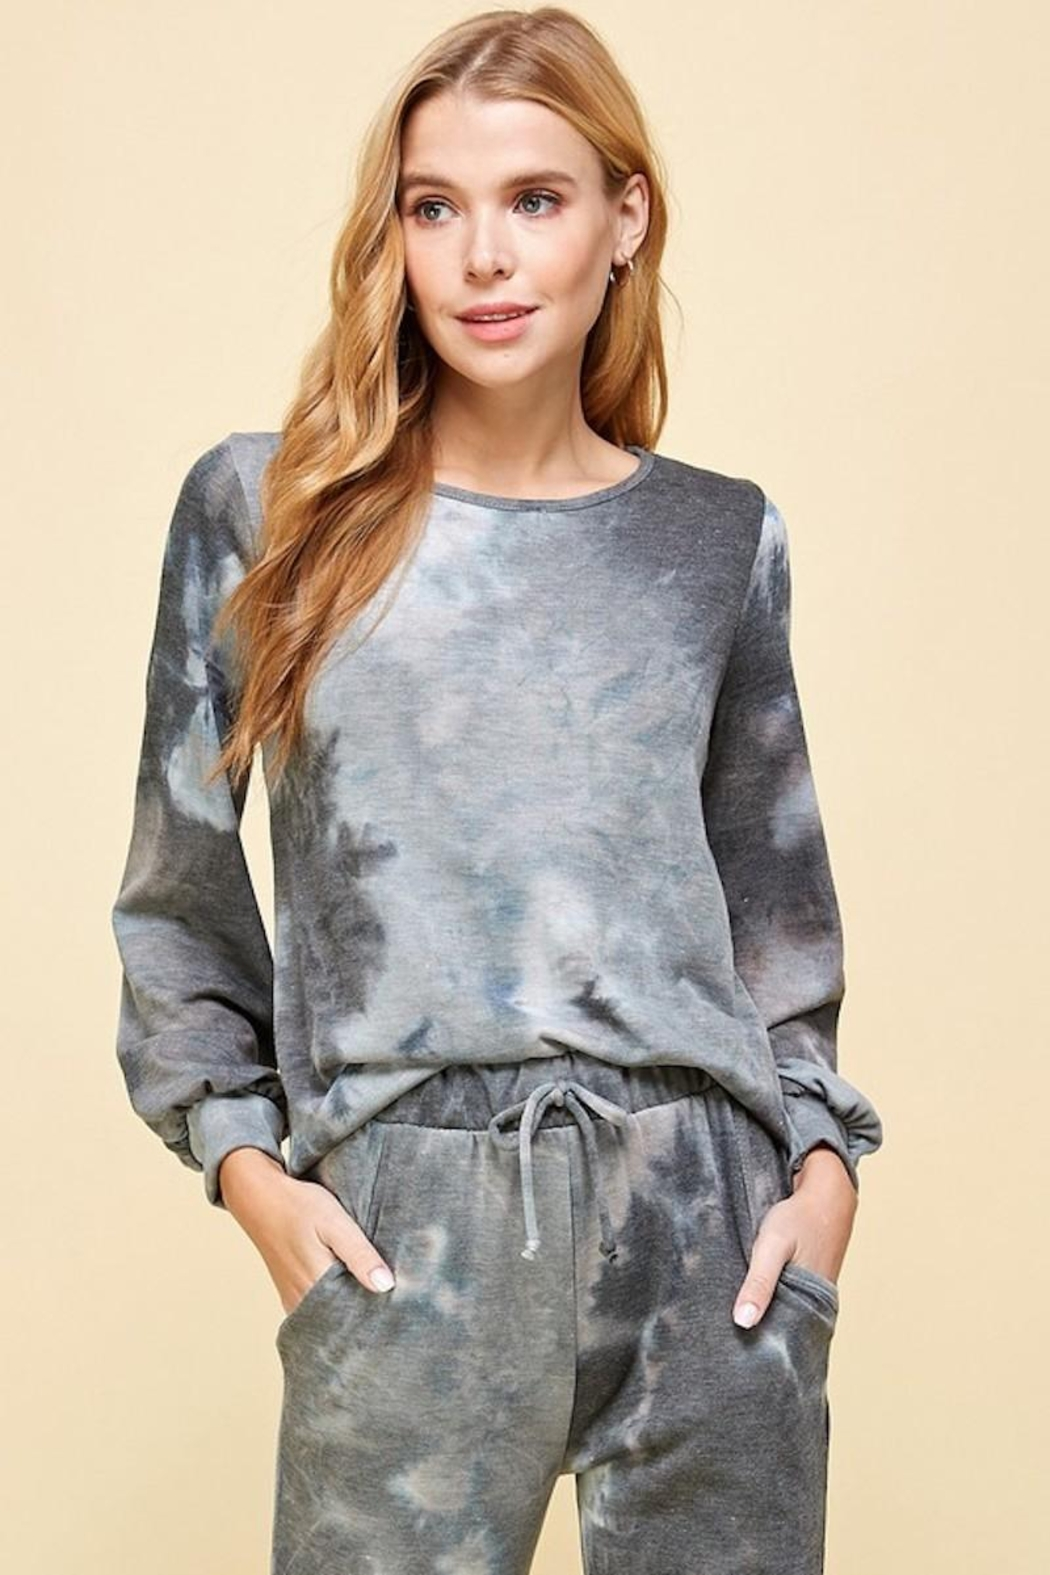 Les Amis Charcoal Tie Dye Top - Main Image